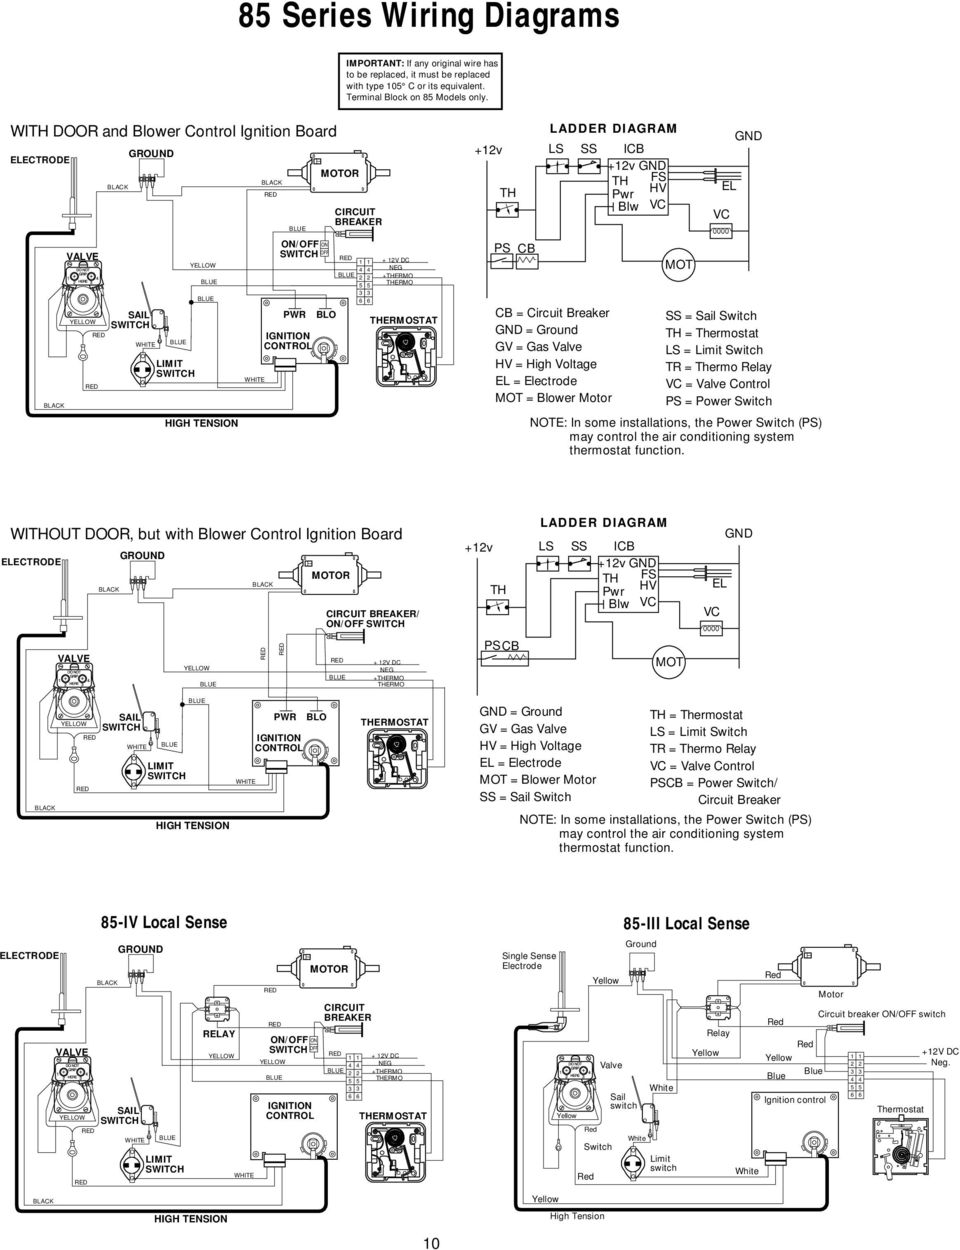 Atwood Service Department Introduction Pdf Air Conditioner Wiring Ladder Diagrams Limit Switch Blue White Pwr Ignition Control Blo 4 2 5 3 6 11 85 Series